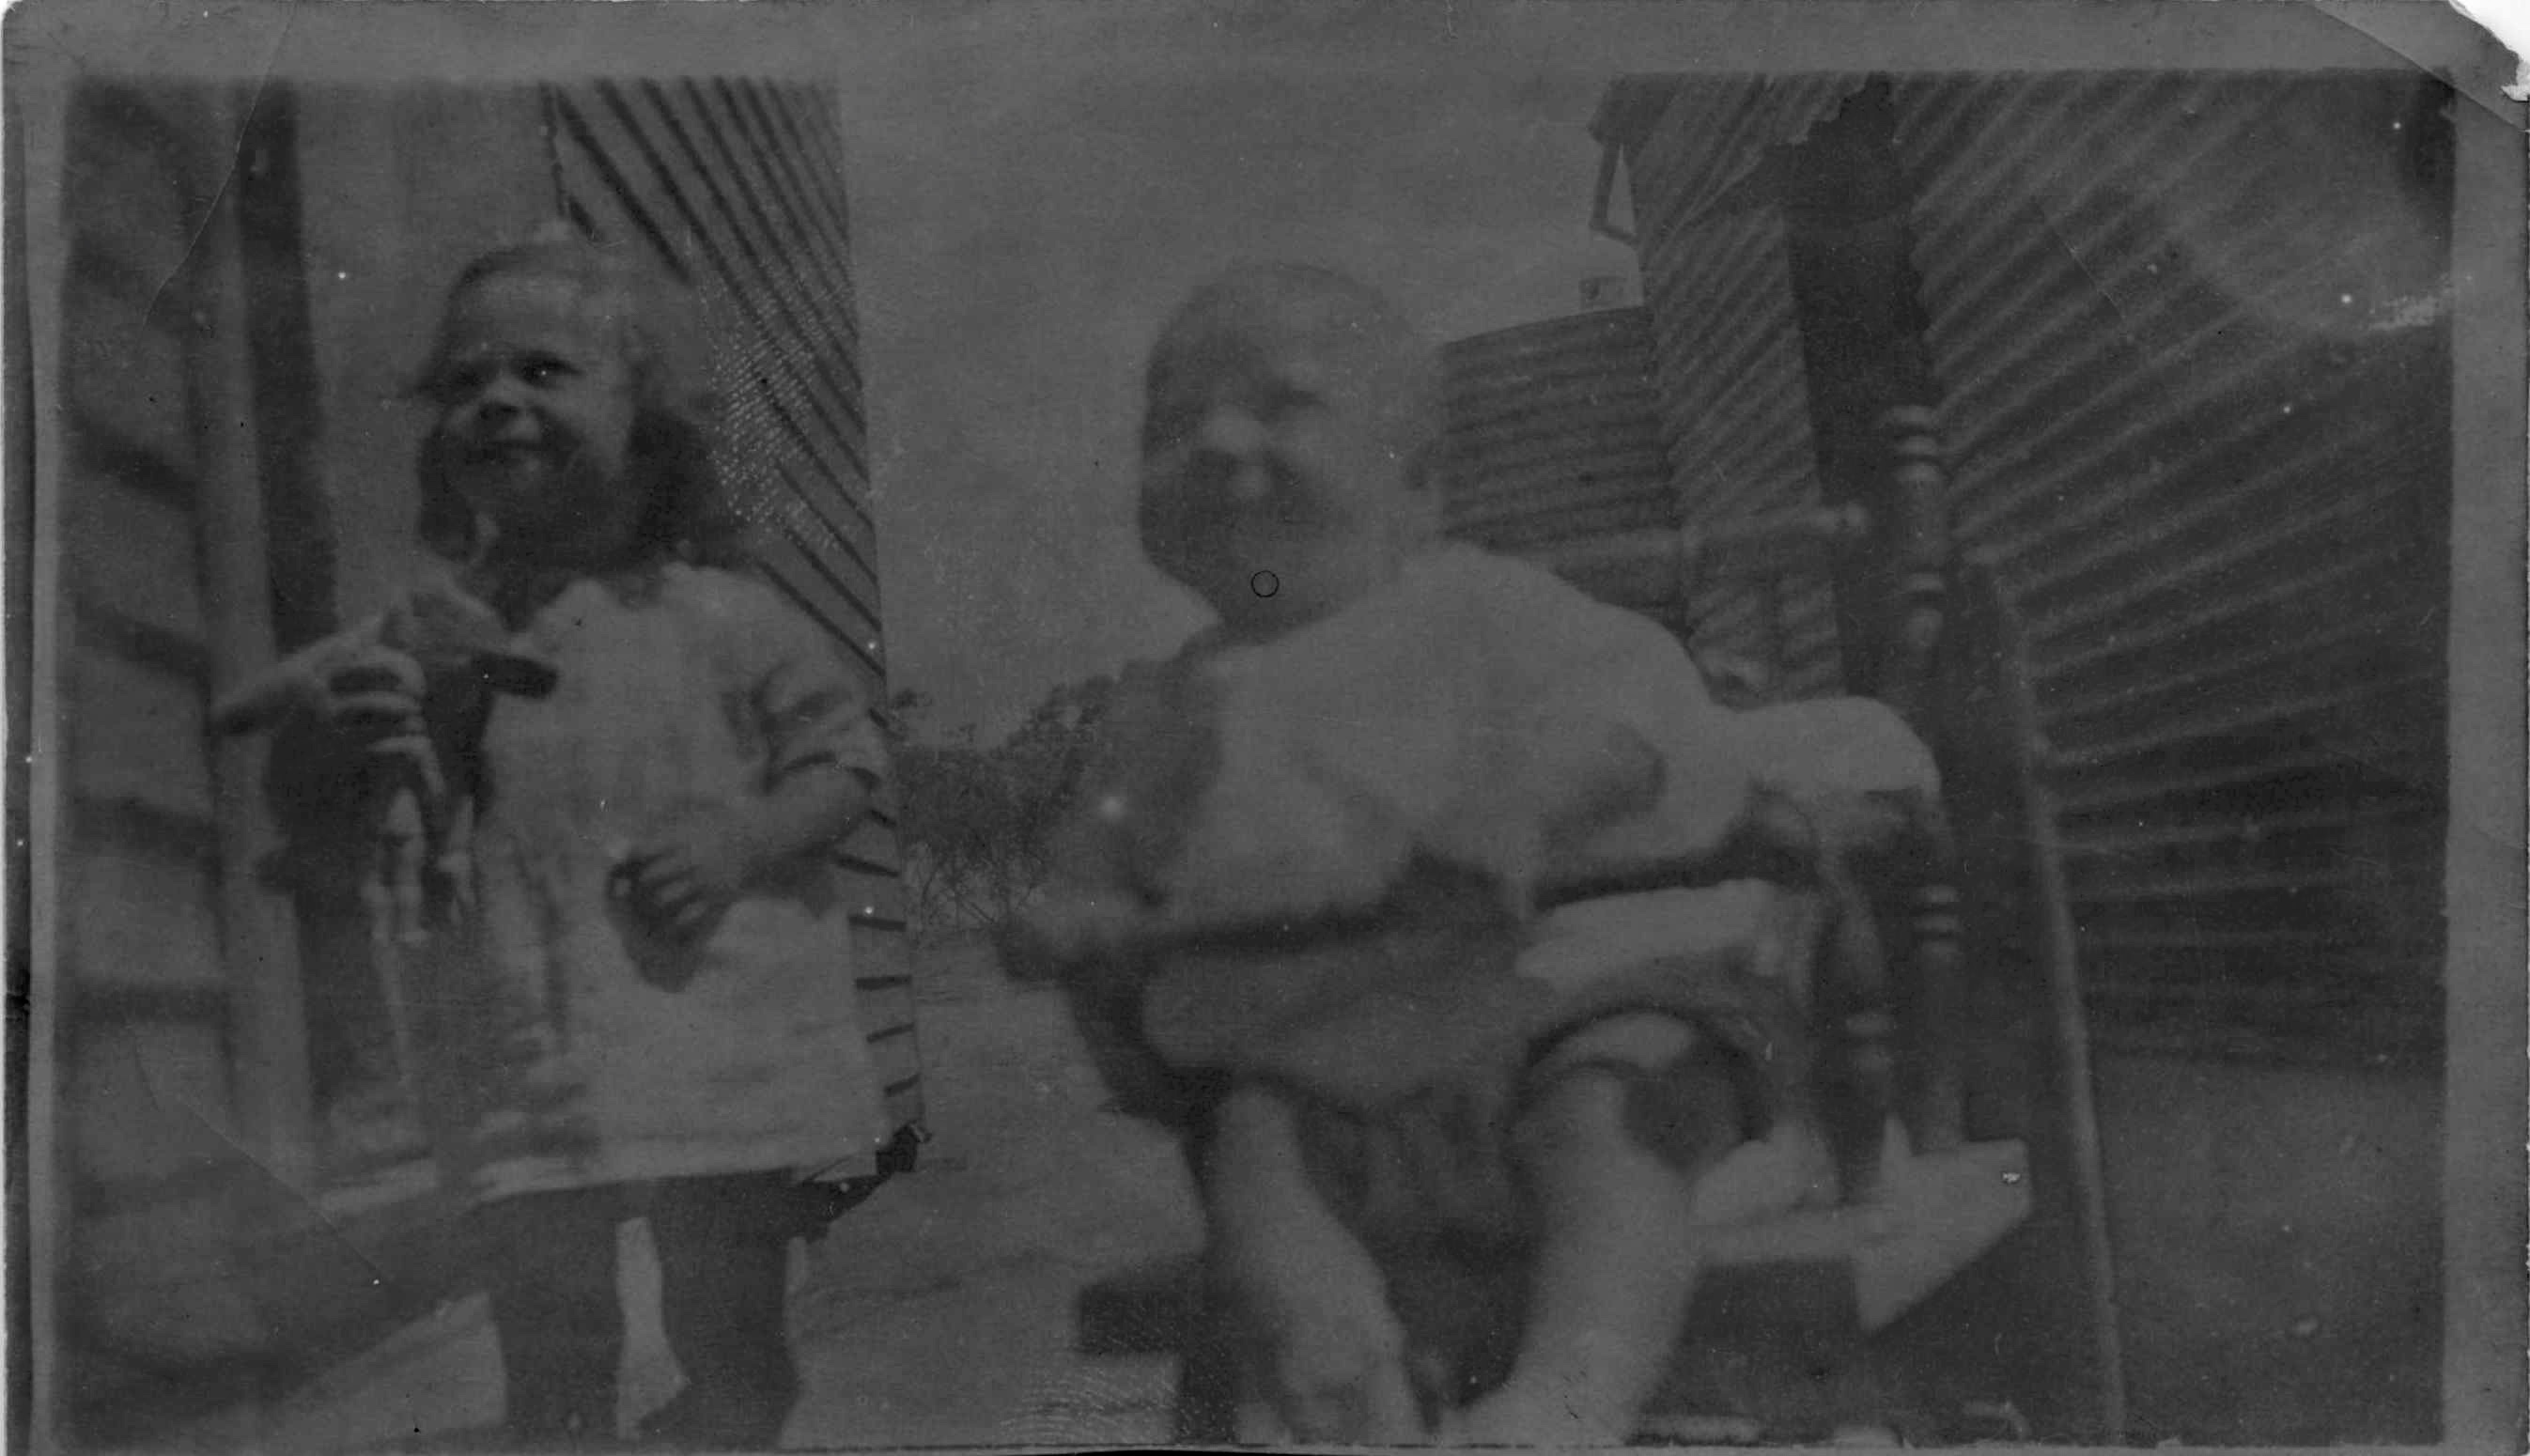 Elsie and Fred Christmas 1924